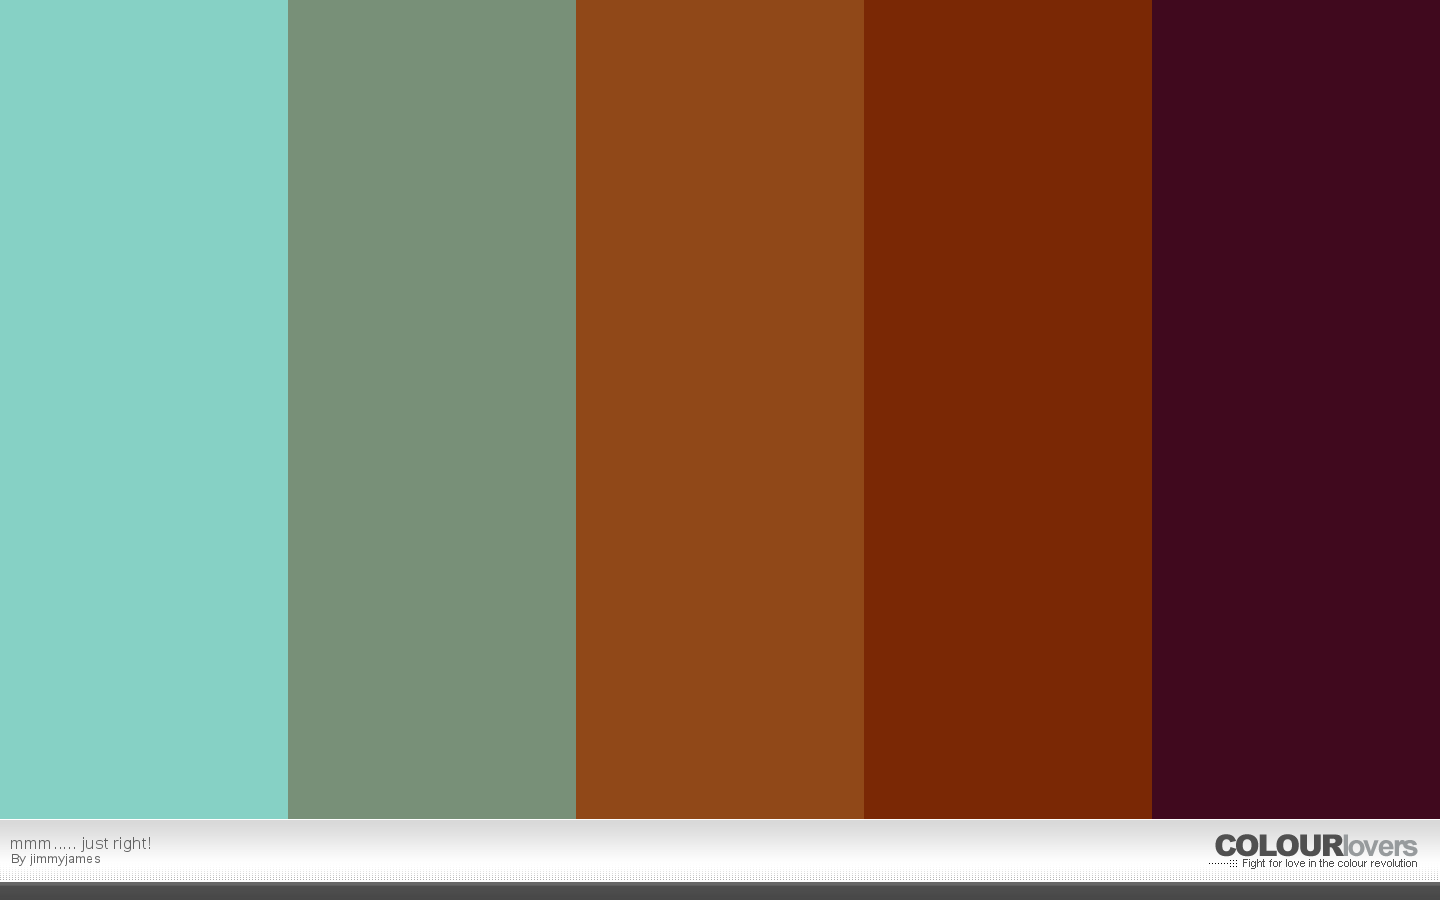 20. mmm..... just right! - metallic color palettes to try